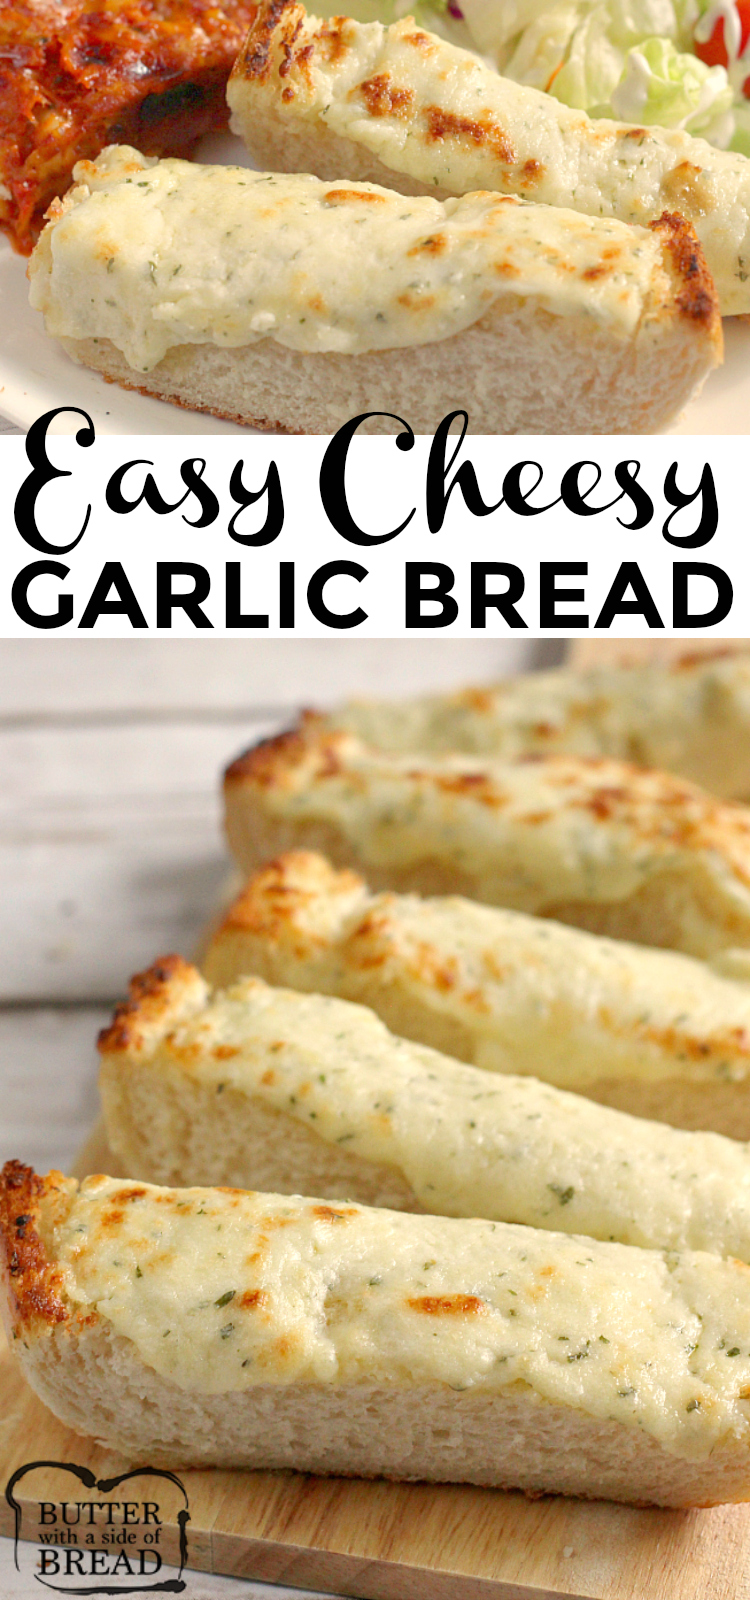 Easy Cheesy Garlic Bread is loaded with butter, cream cheese, garlic, parsley and mozzarella- it's the perfect side dish for every Italian meal!